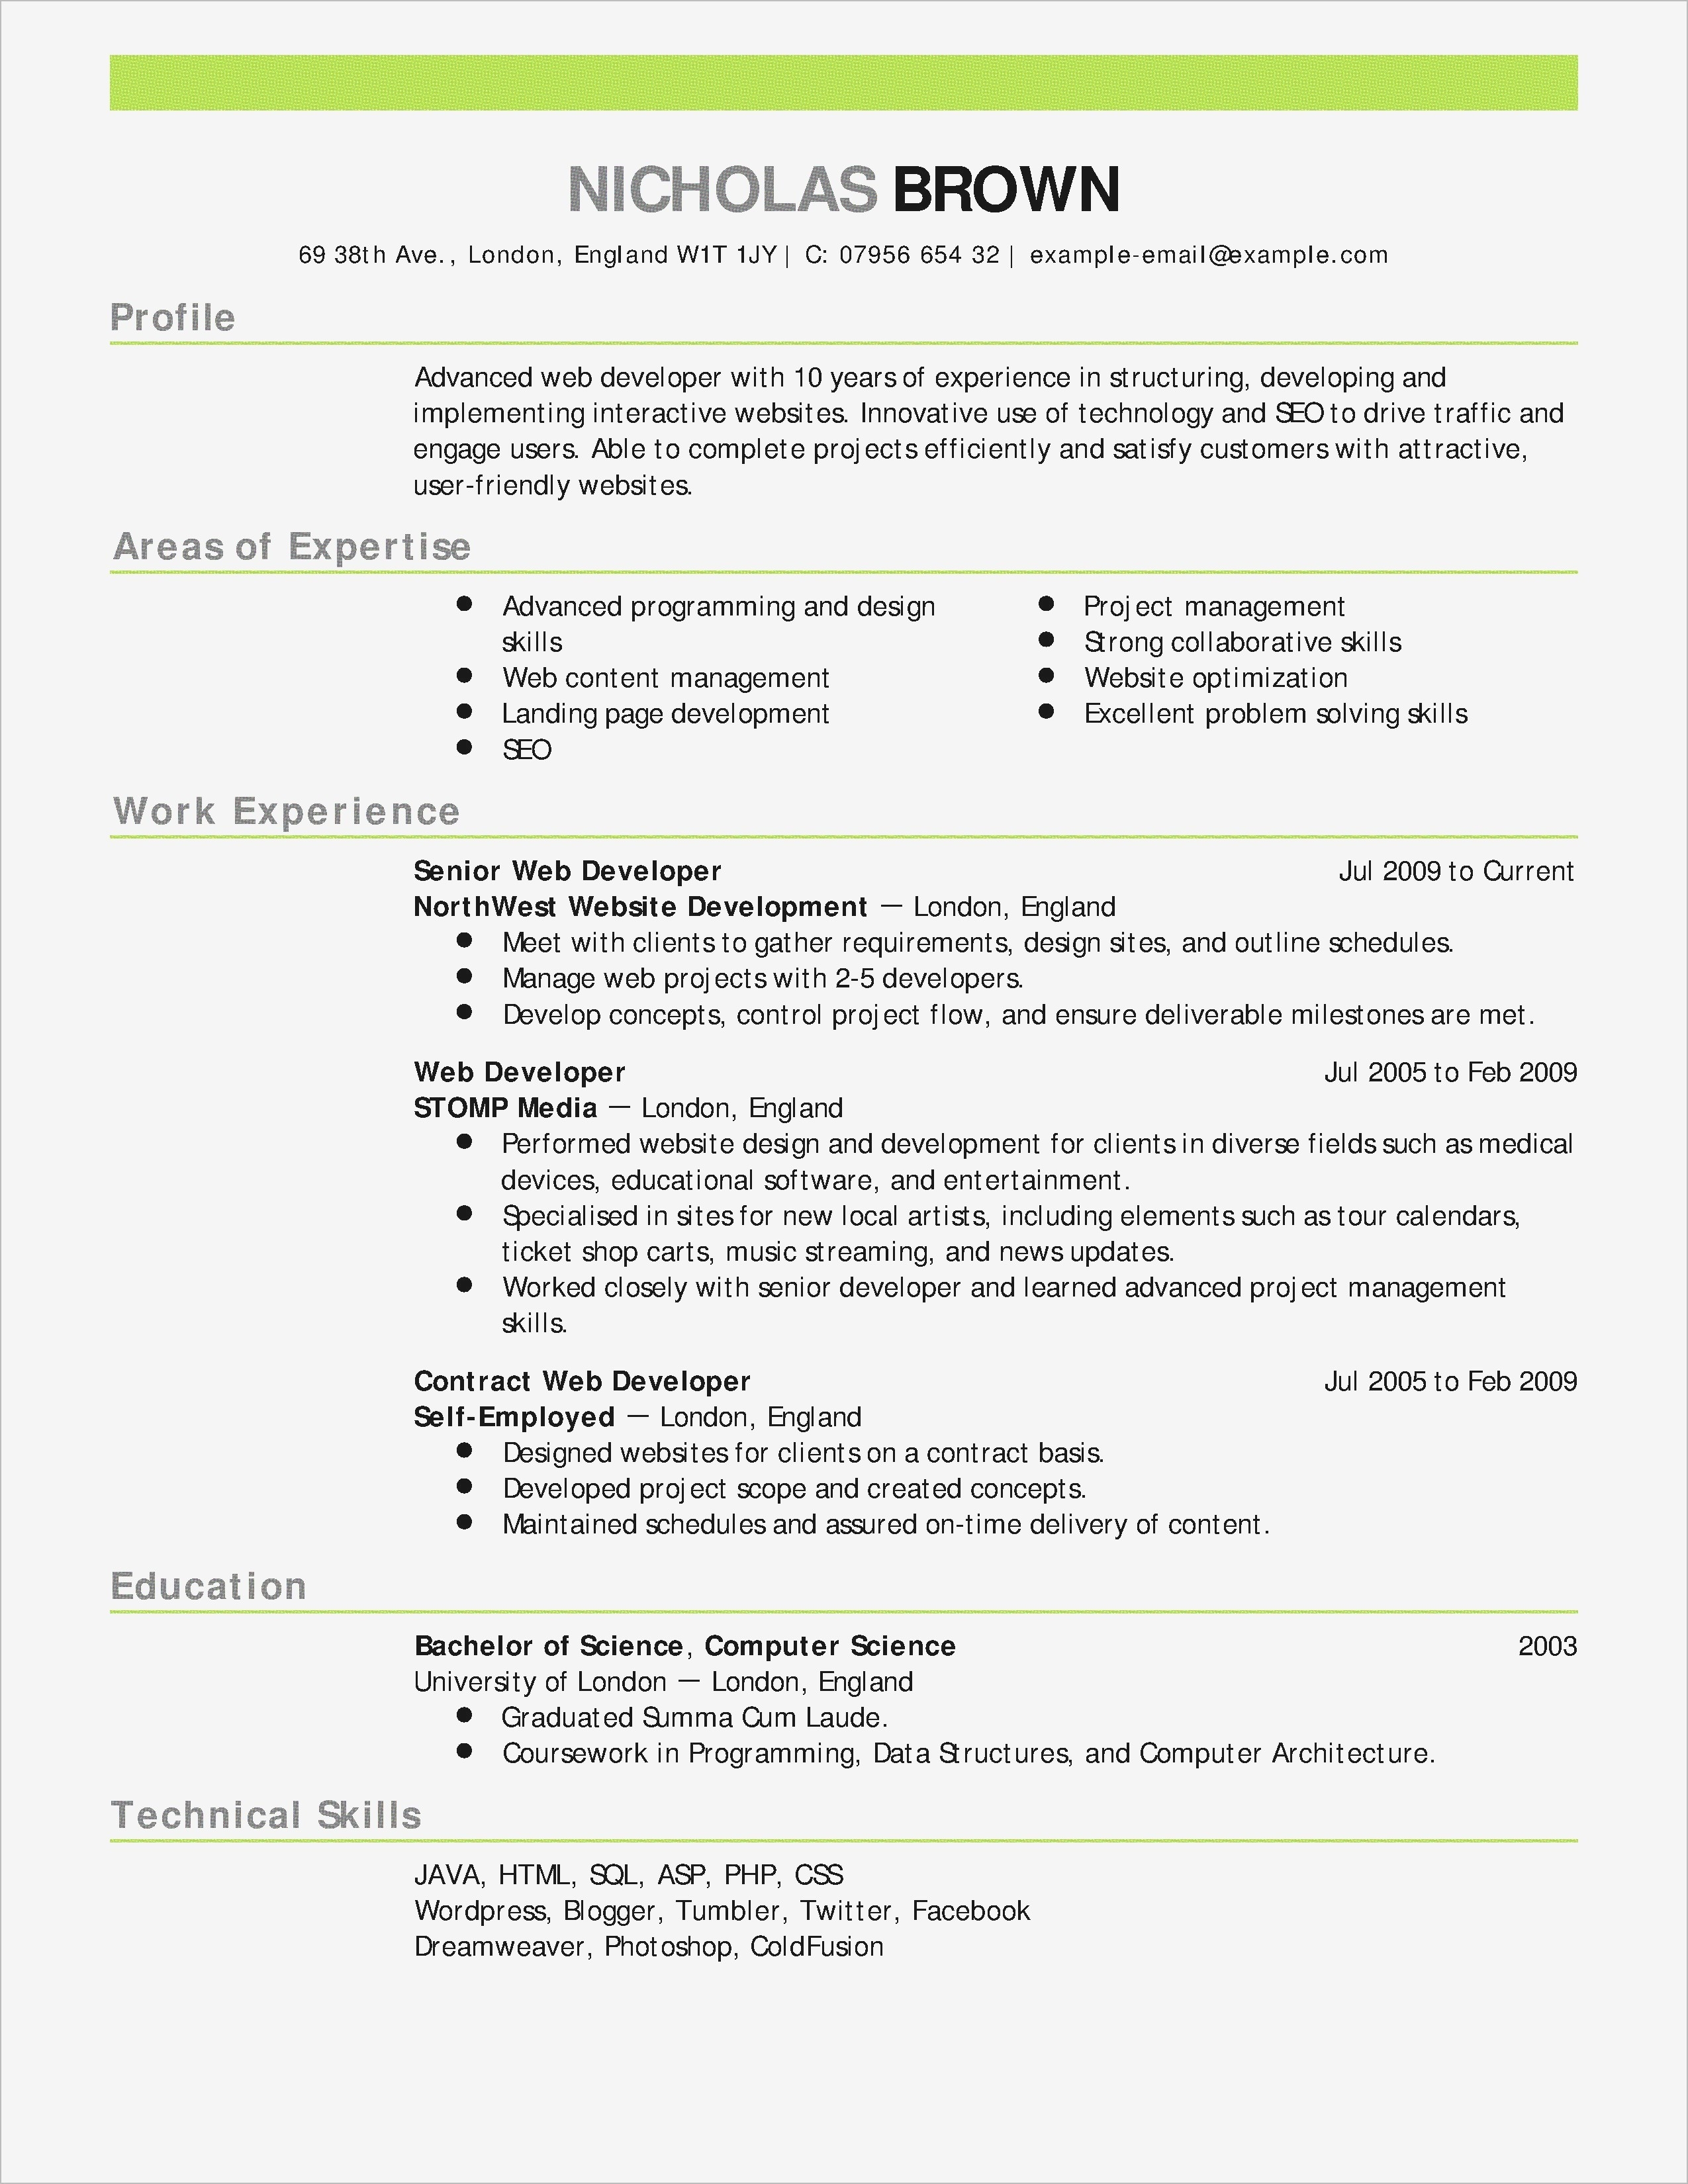 cfo resume template example-Letter Stencils for Painting Lovely Cfo Resume Template Inspirational Actor Resumes 0d – Letter Templates 7-g